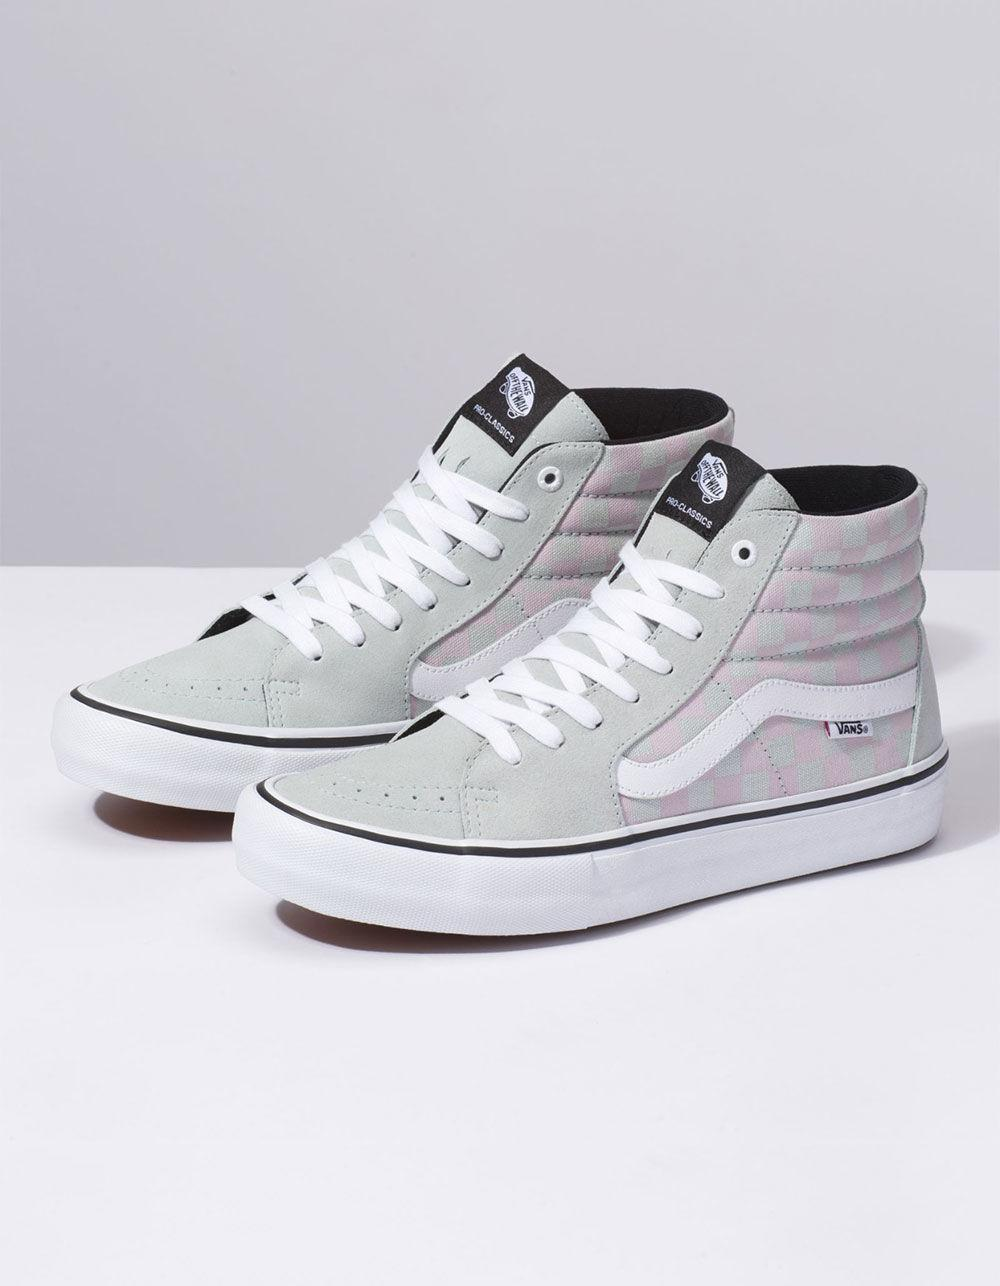 eec6d30d62 Lyst - Vans Checkerboard Sk8-hi Pro Smoke   Violet Ice Shoes for Men